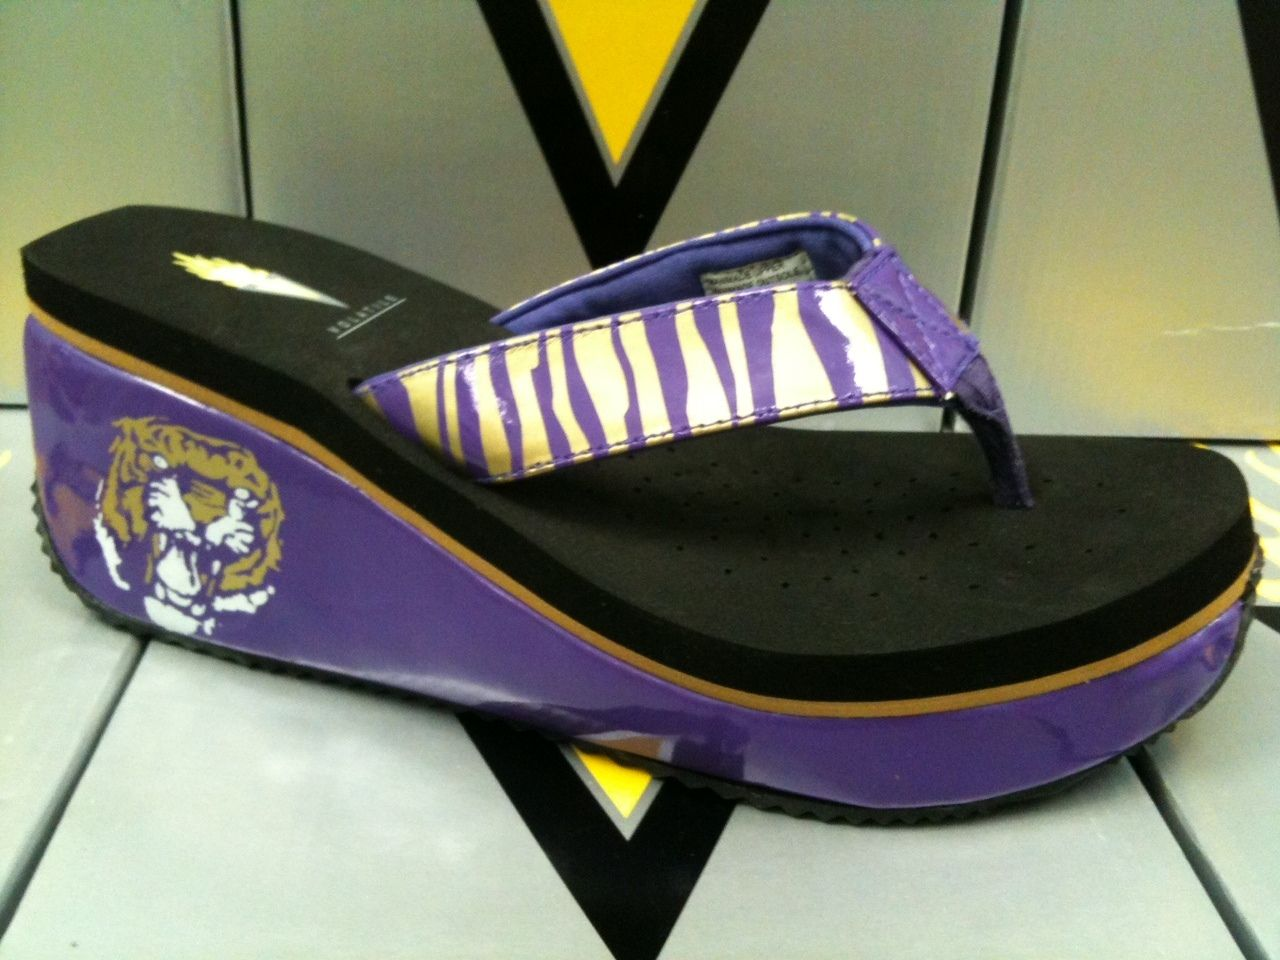 New Style In Volatile Bengal Purple Gold Lsu Tiger Collegiate Wedge Sendal Flat Lisa All Right Girls D